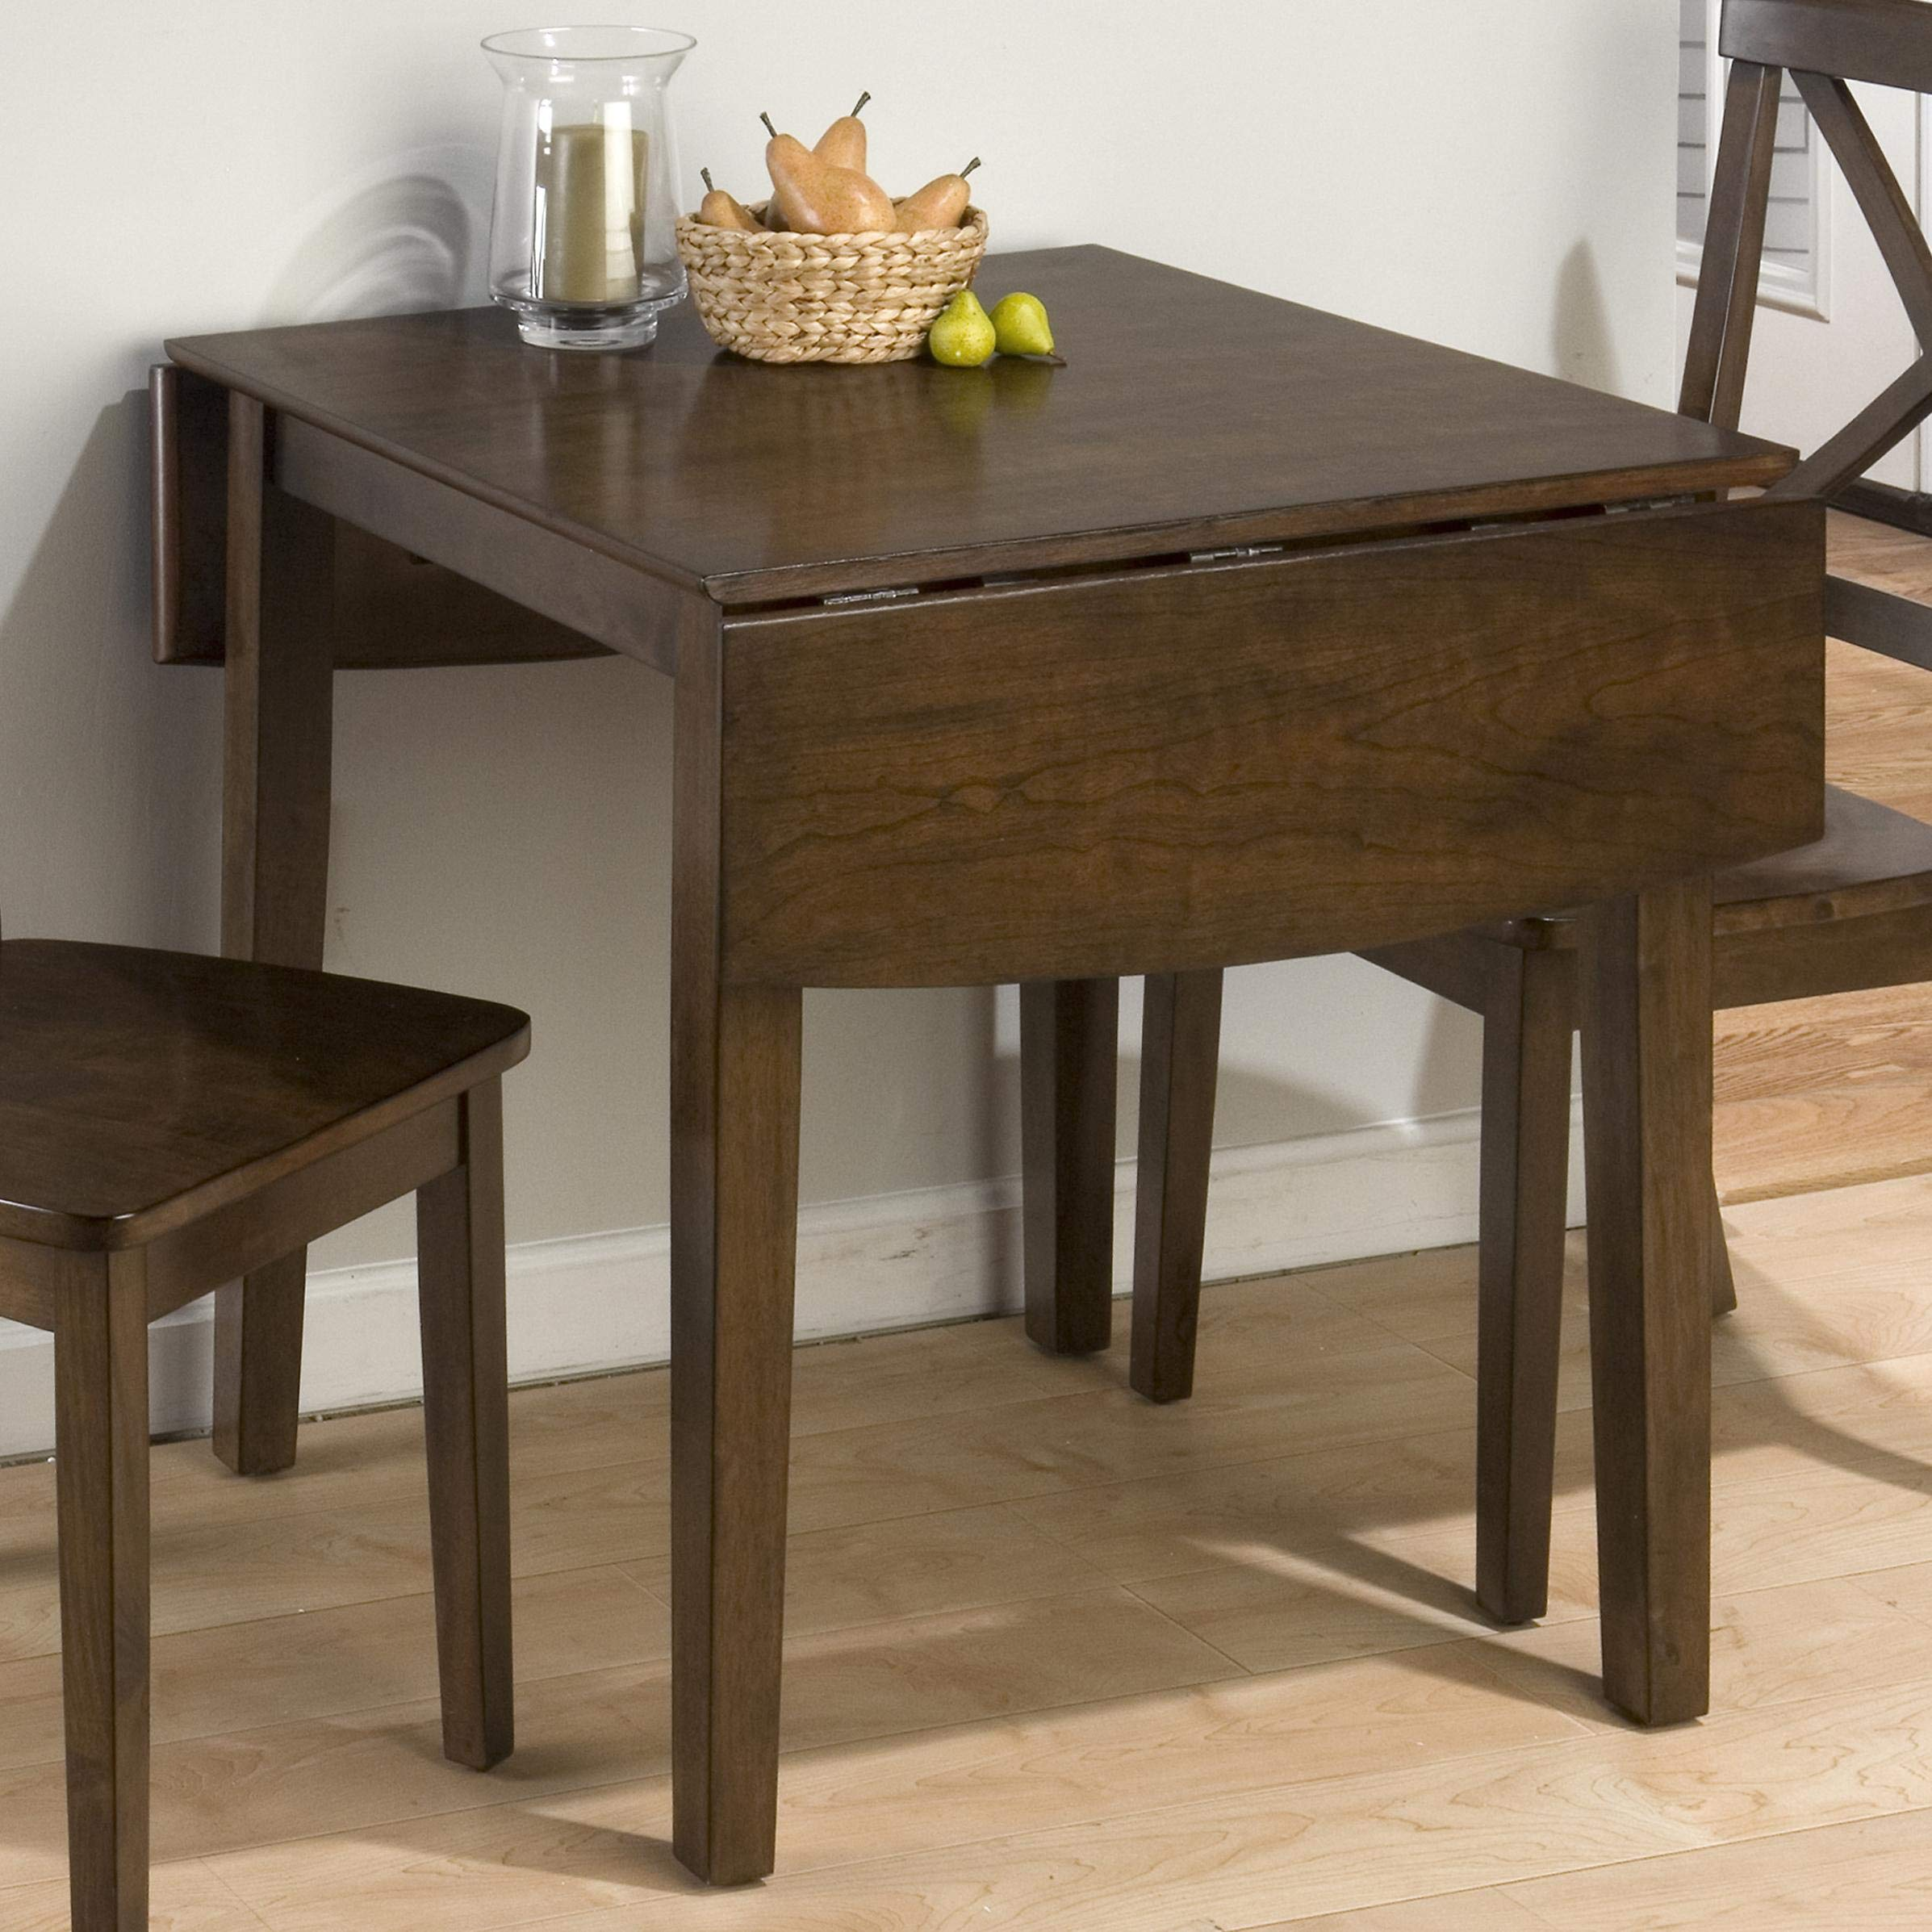 Wooden Dining Table With Drop Down Leaf, Cherry Brown